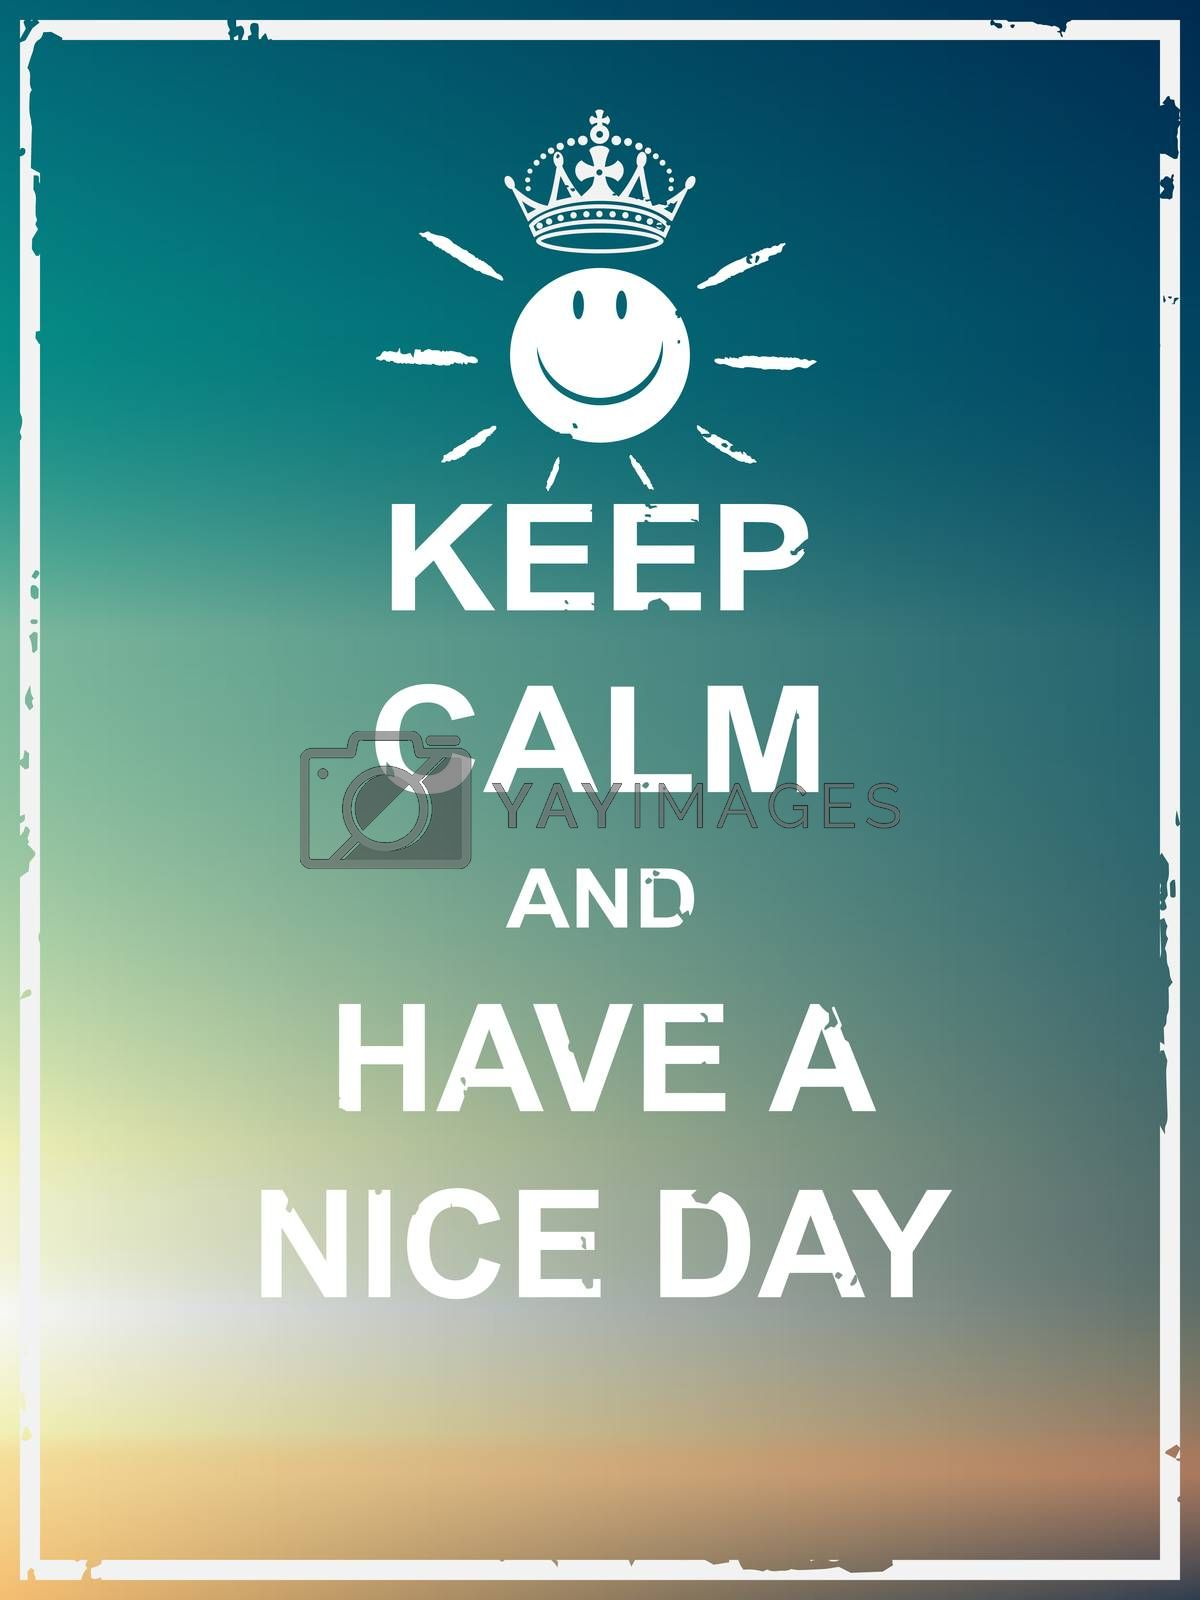 Keep calm and have a nice day by Saeteaw